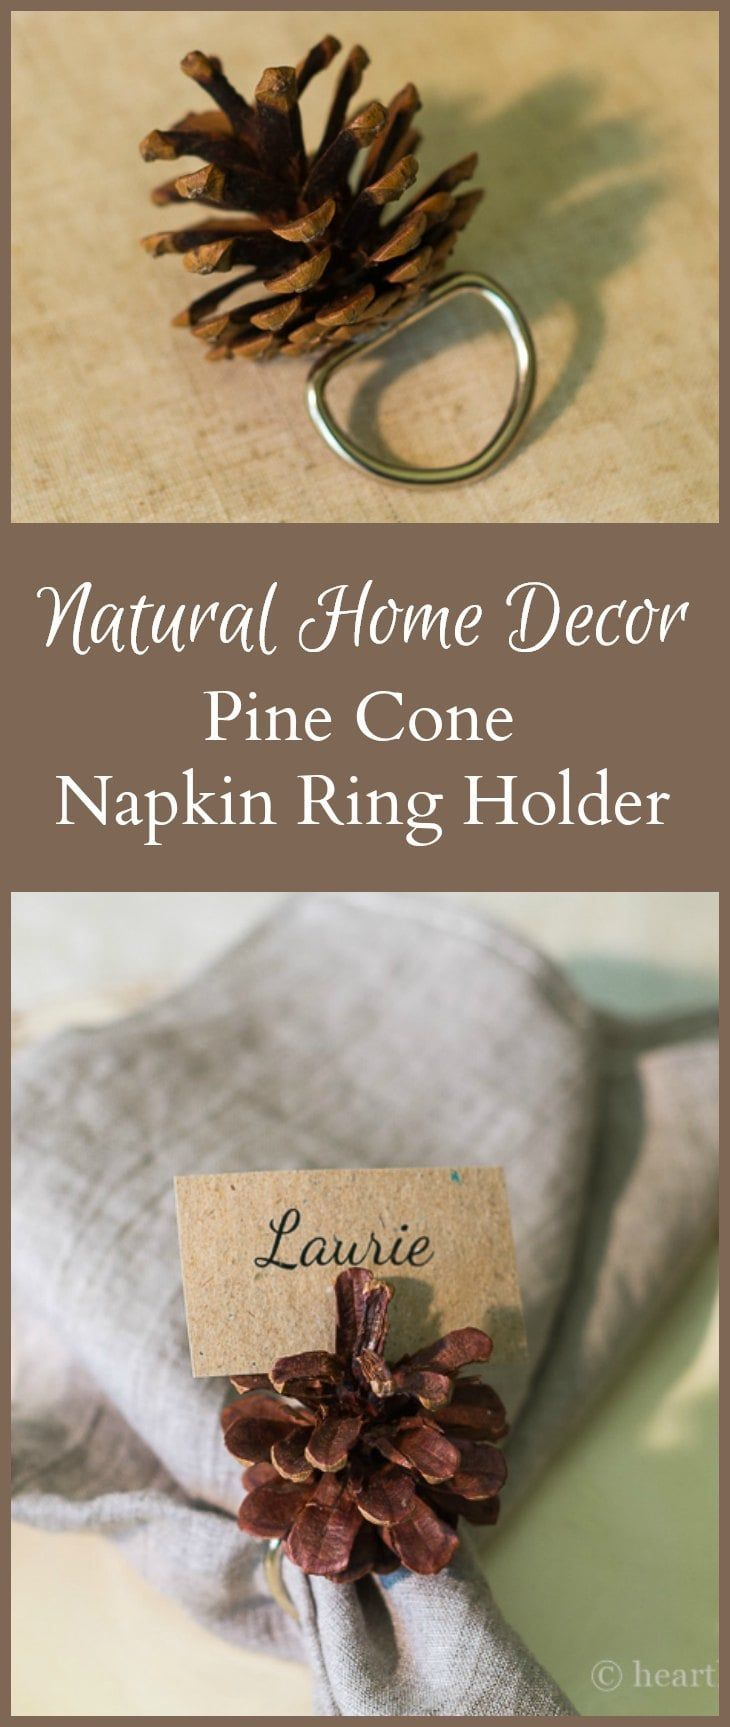 Pine cone napkin rings create natural beauty for your table any time of year. They are simple to make, and also double as name tag holders. #pinecone #crafts #tabledecor